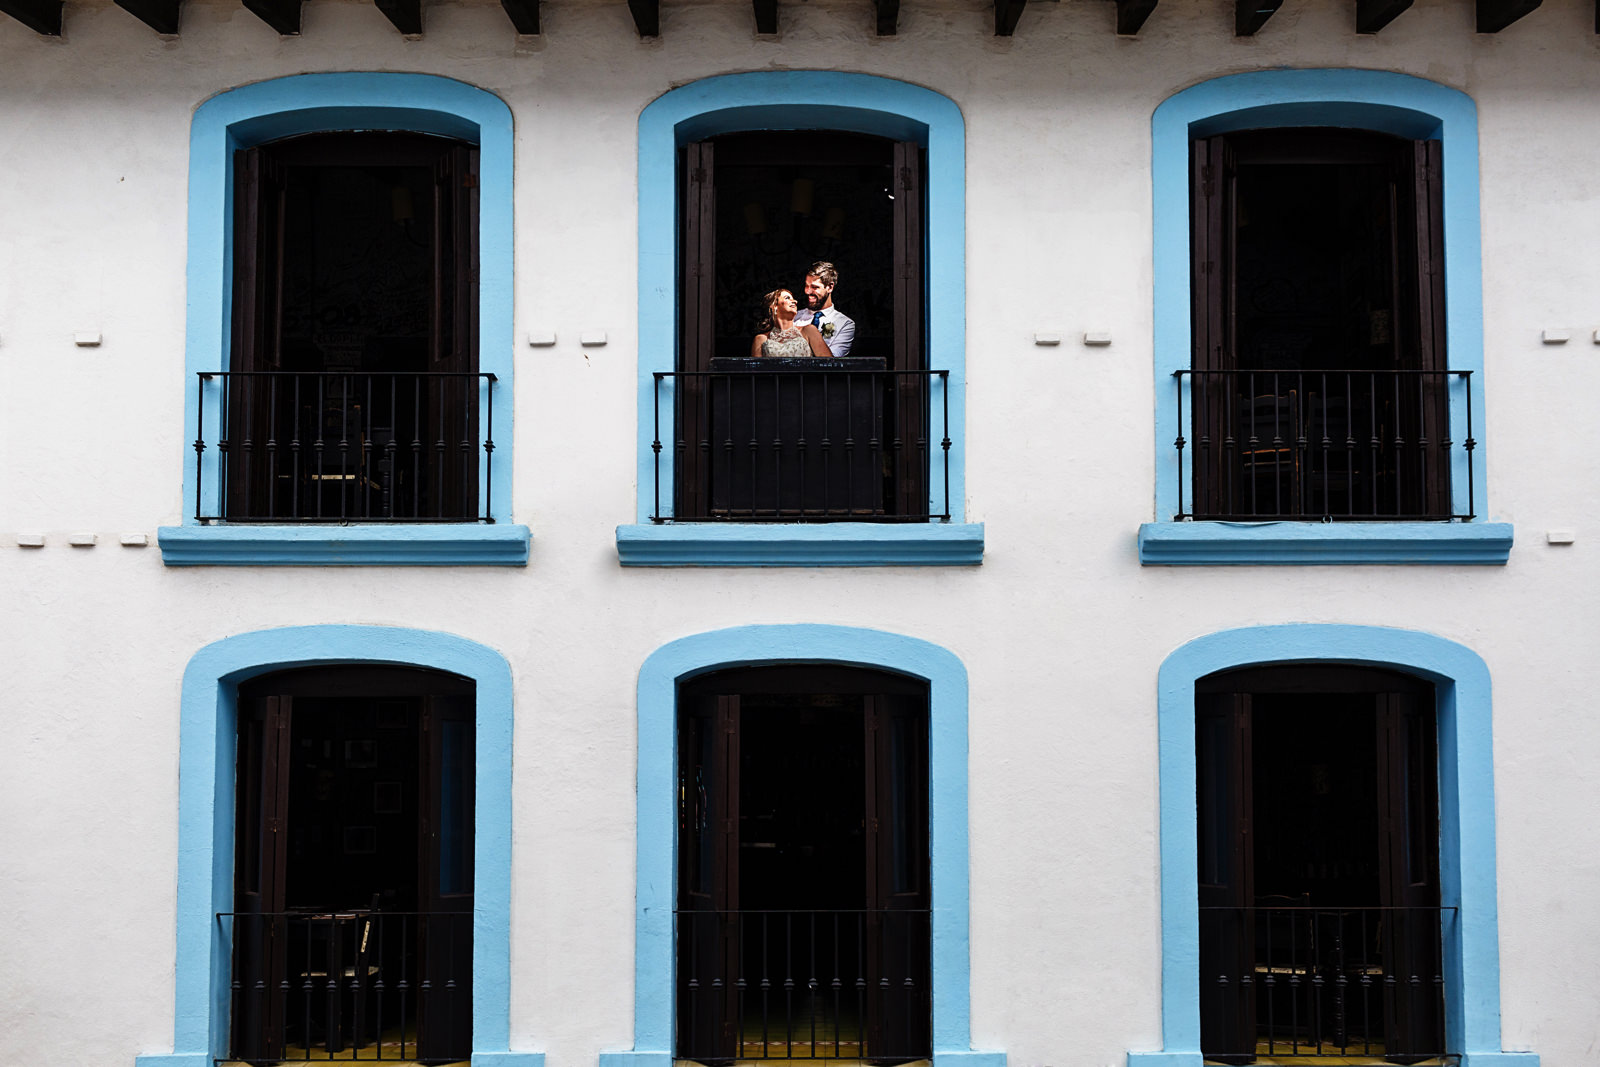 Groom and bride portrait, the couple is framed on a blue window with a white facade.